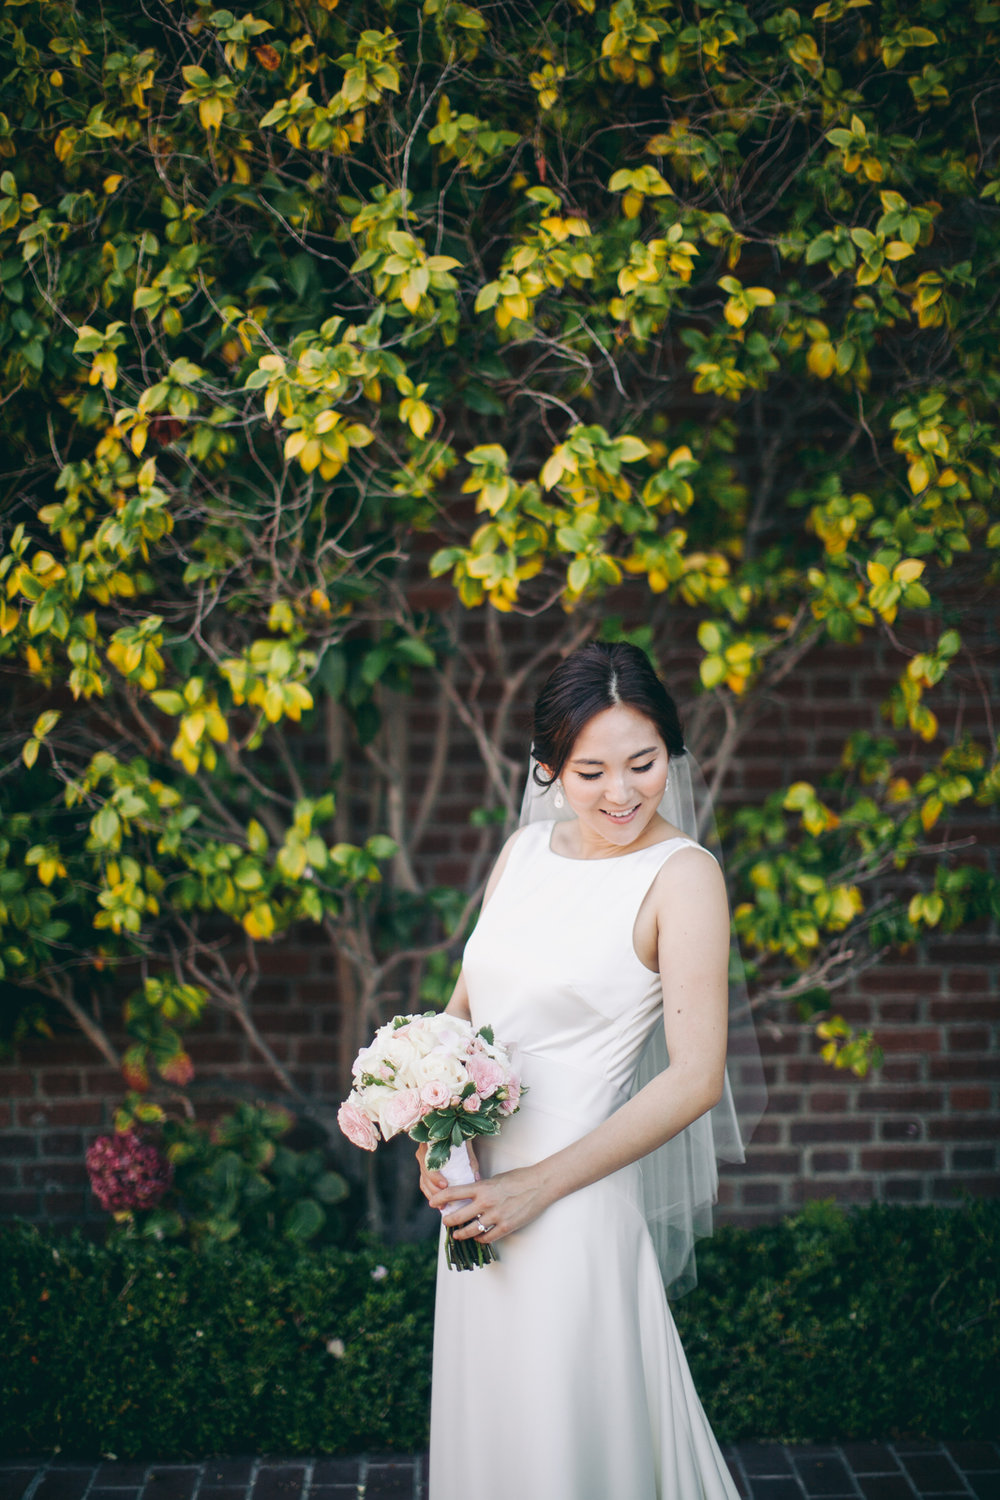 kohl_manison_wedding_photography_sarah_eric_ebony_siovhan_bokeh_photography_035.jpg